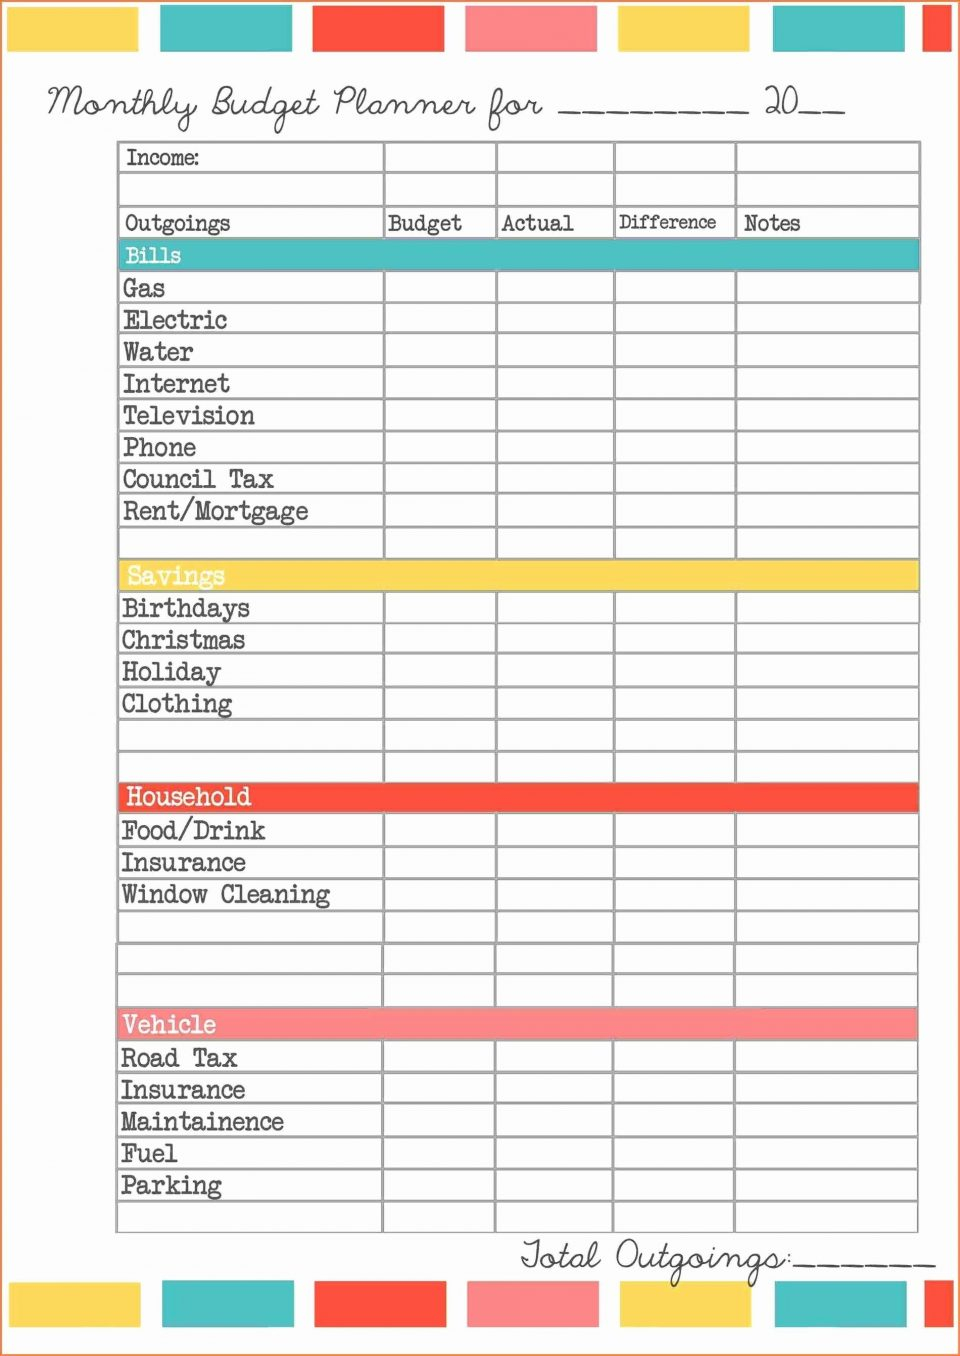 Spreadsheet Accounting Templates For Small Business Free Downloads For Free Simple Accounting Spreadsheet Small Business